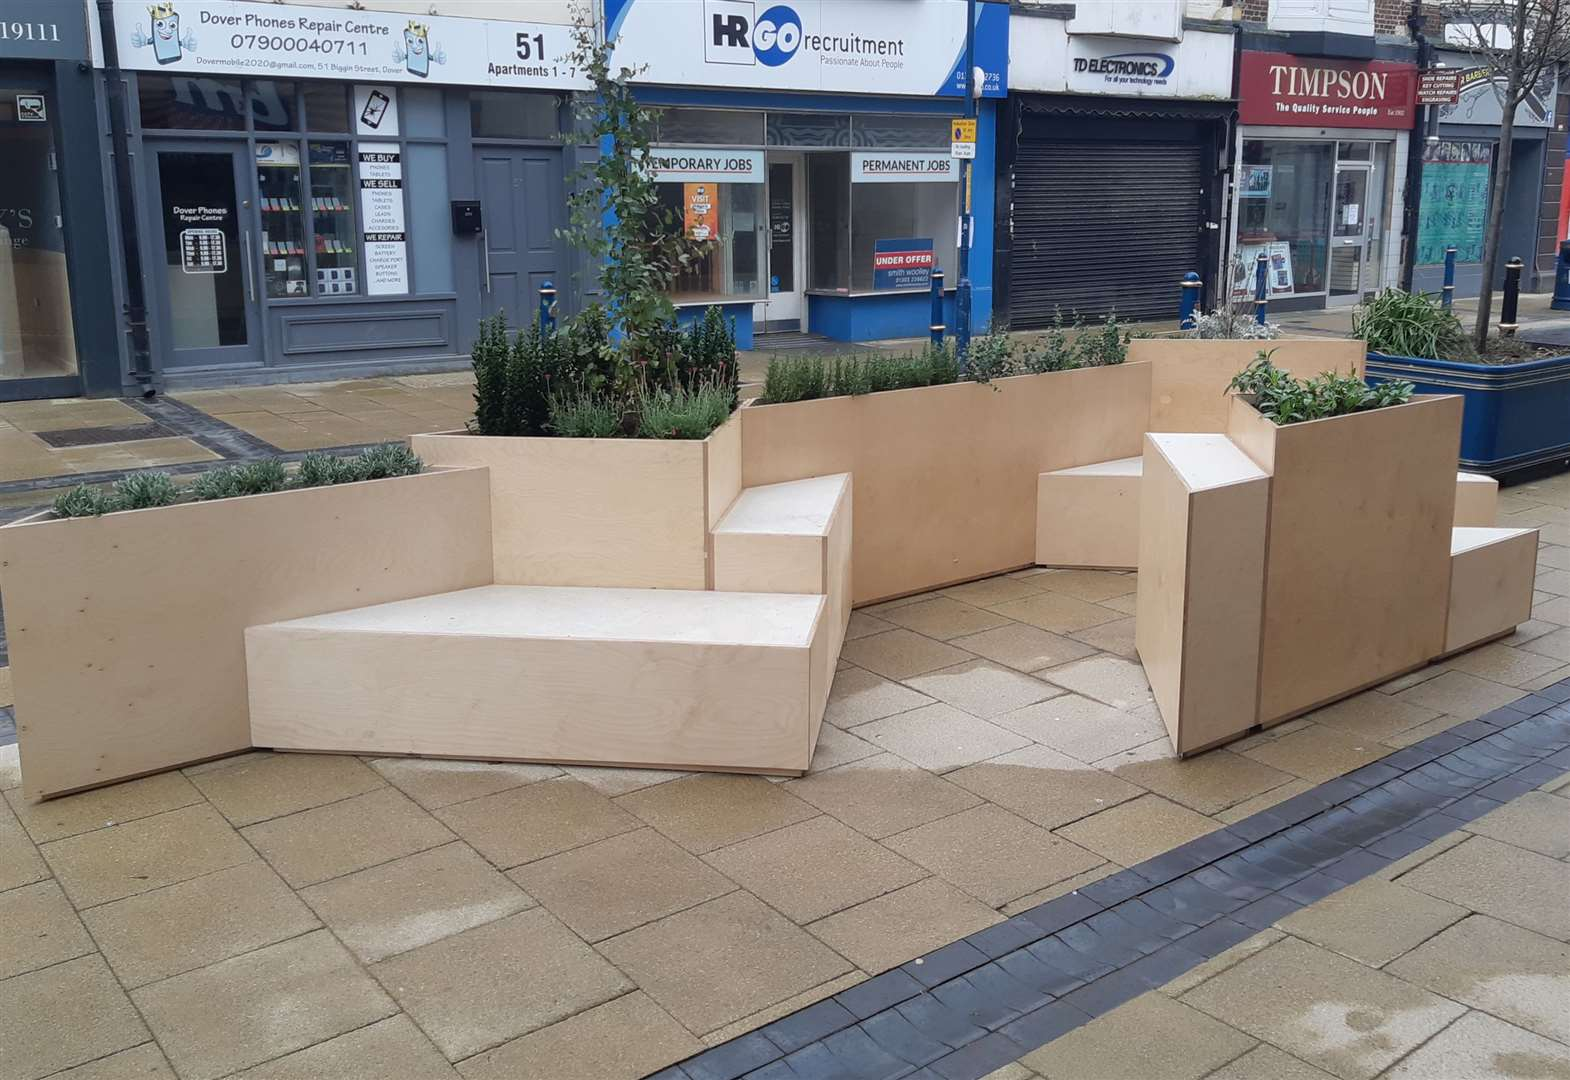 Town's new seating 'looks cheap and tacky'